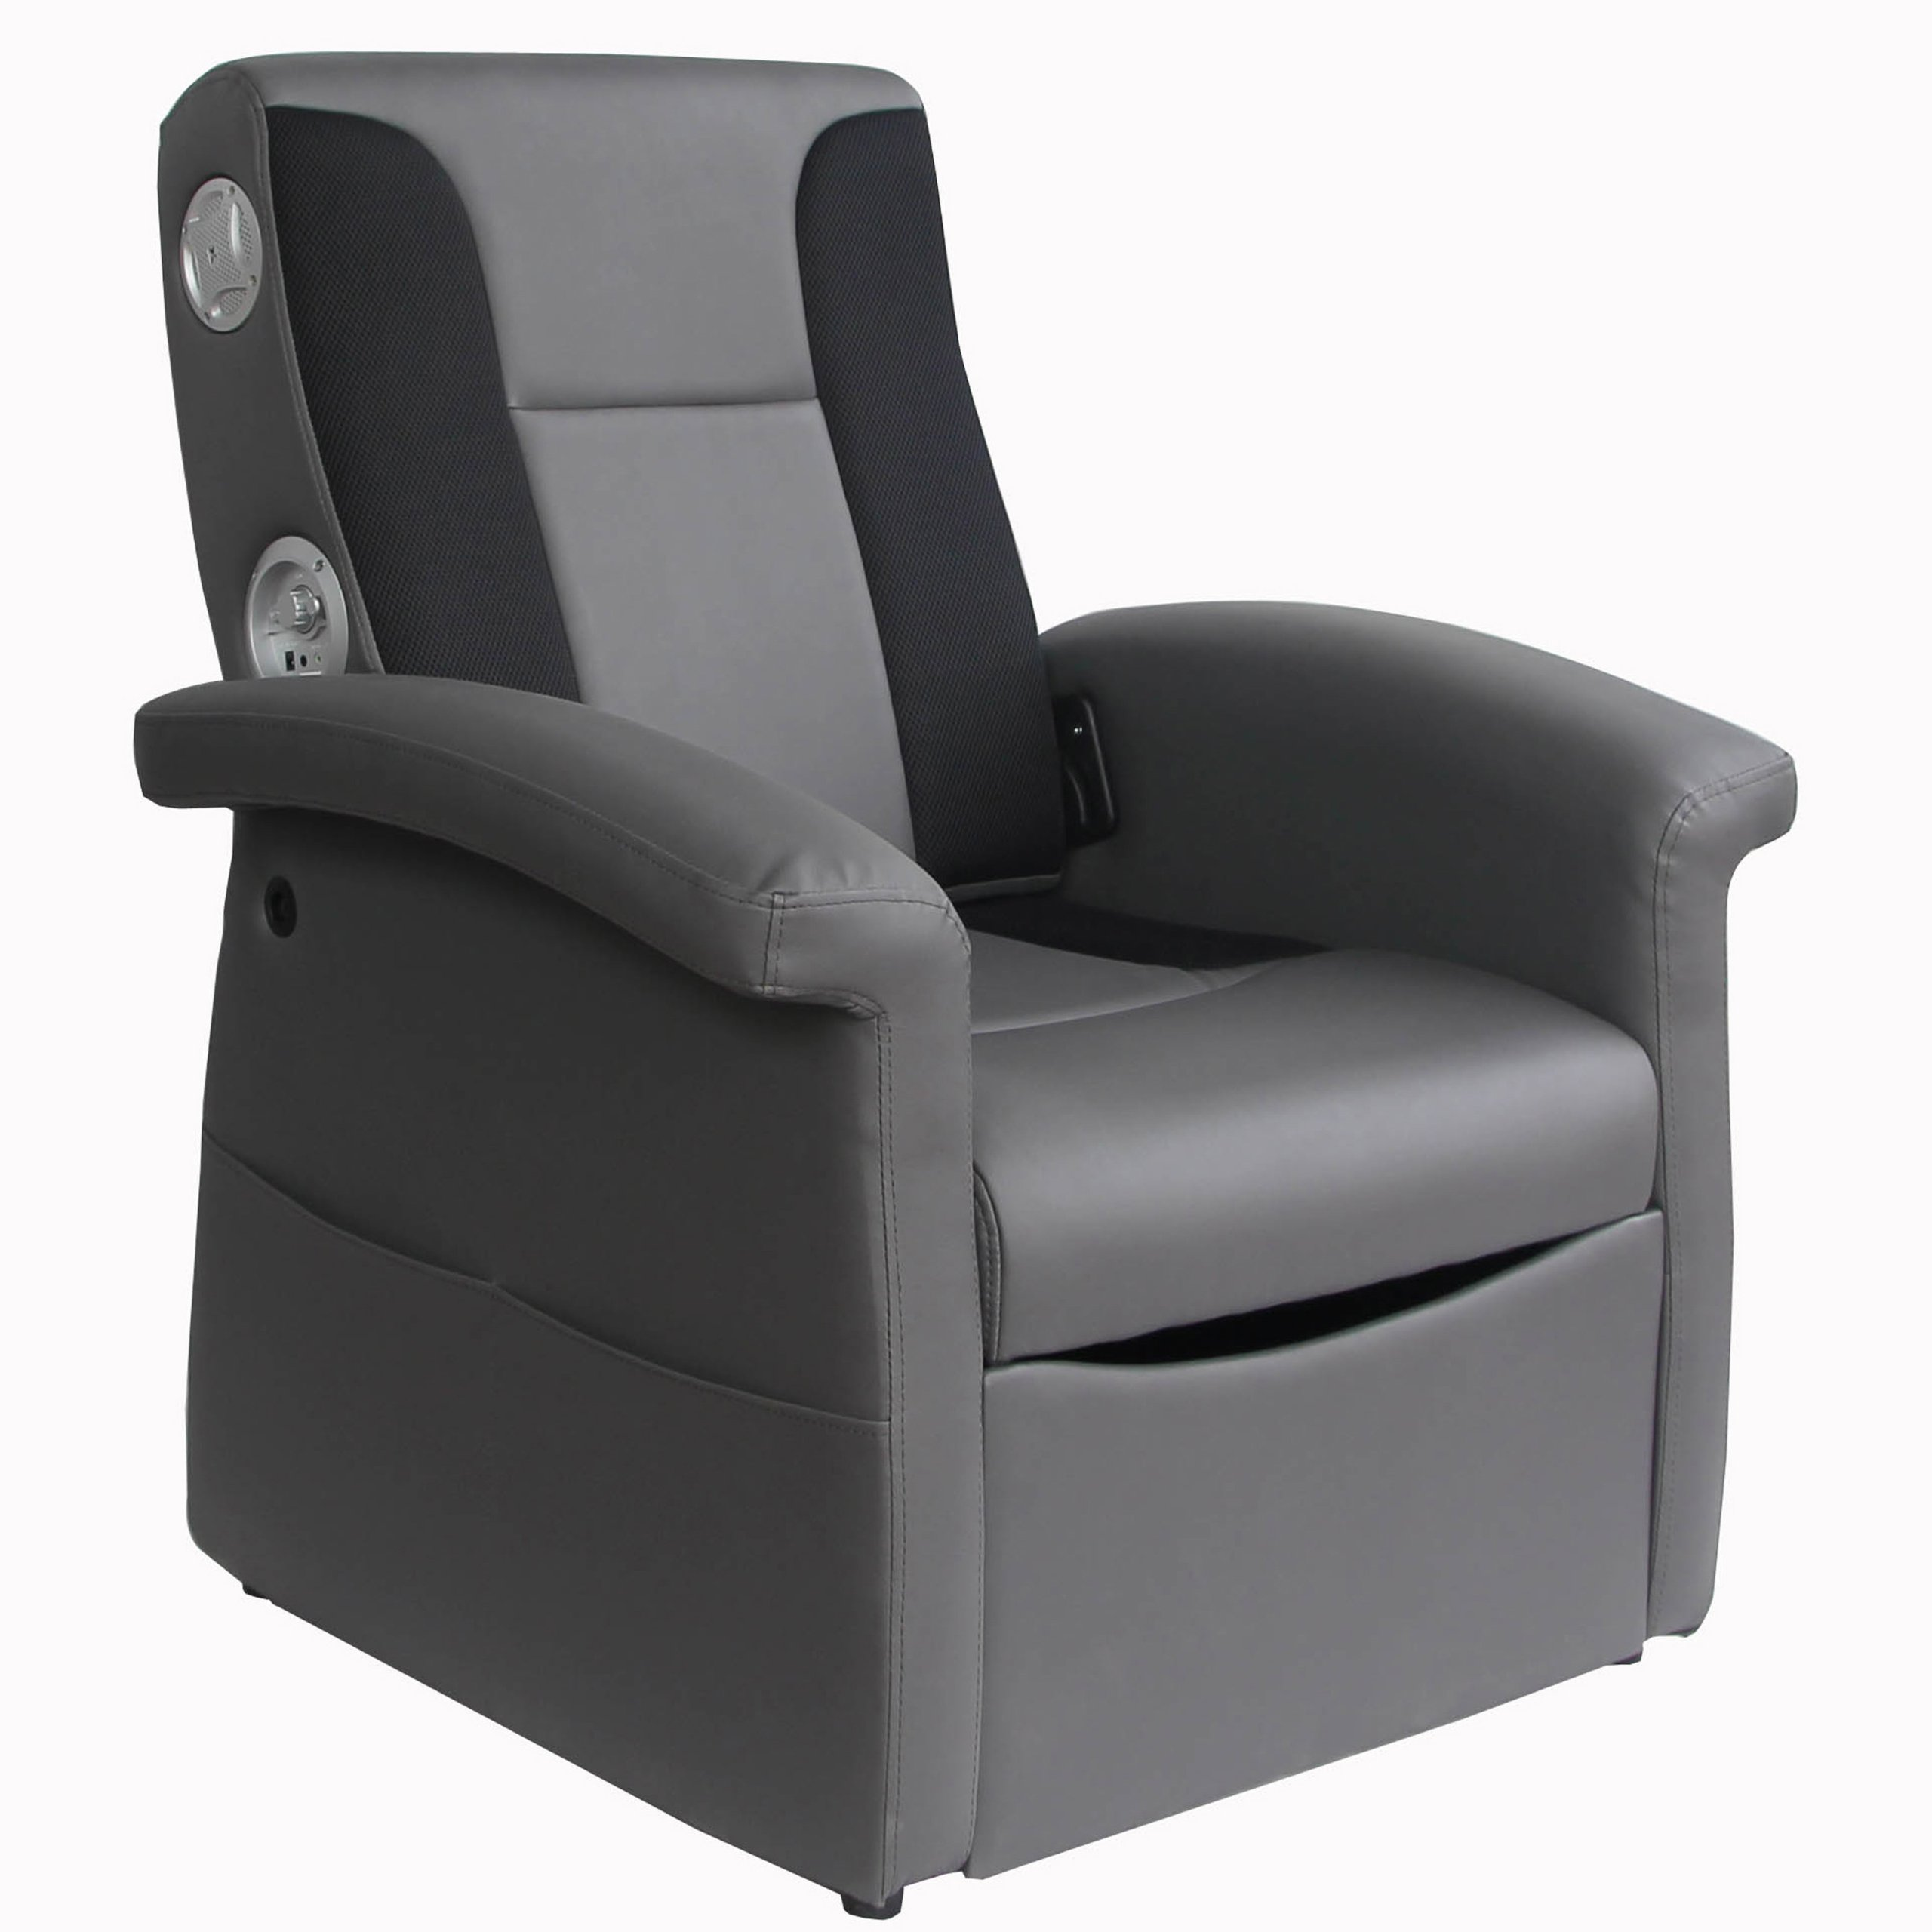 X Rocker Triple Flip 2.1 Sound Recliner with Storage Compartment - Foldable Gaming Chair, Home Theater Seating with 2 Speakers and 4'' Subwoofer - Gray, 0717901 by X Rocker